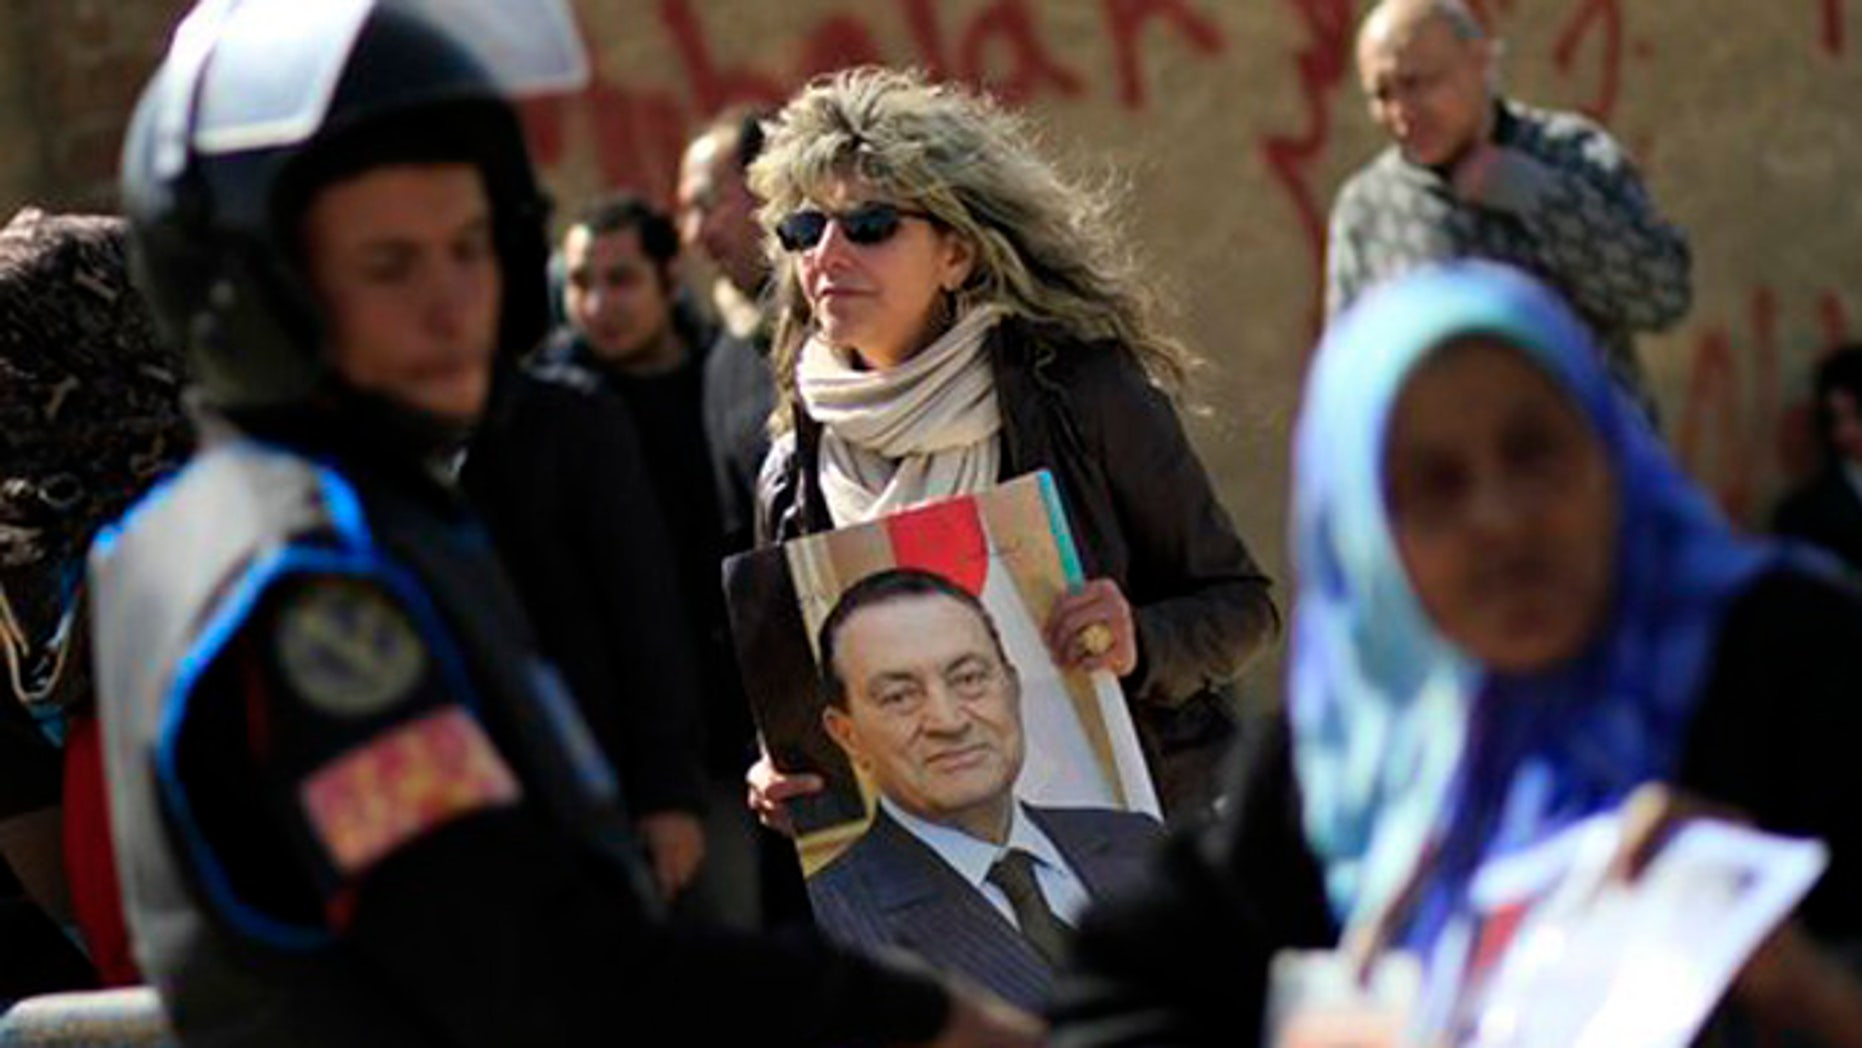 Feb. 22, 2012: An Egyptian woman holds a photo of the ousted Egyptian President Mubarak outside a courtroom in Cairo, Egypt.